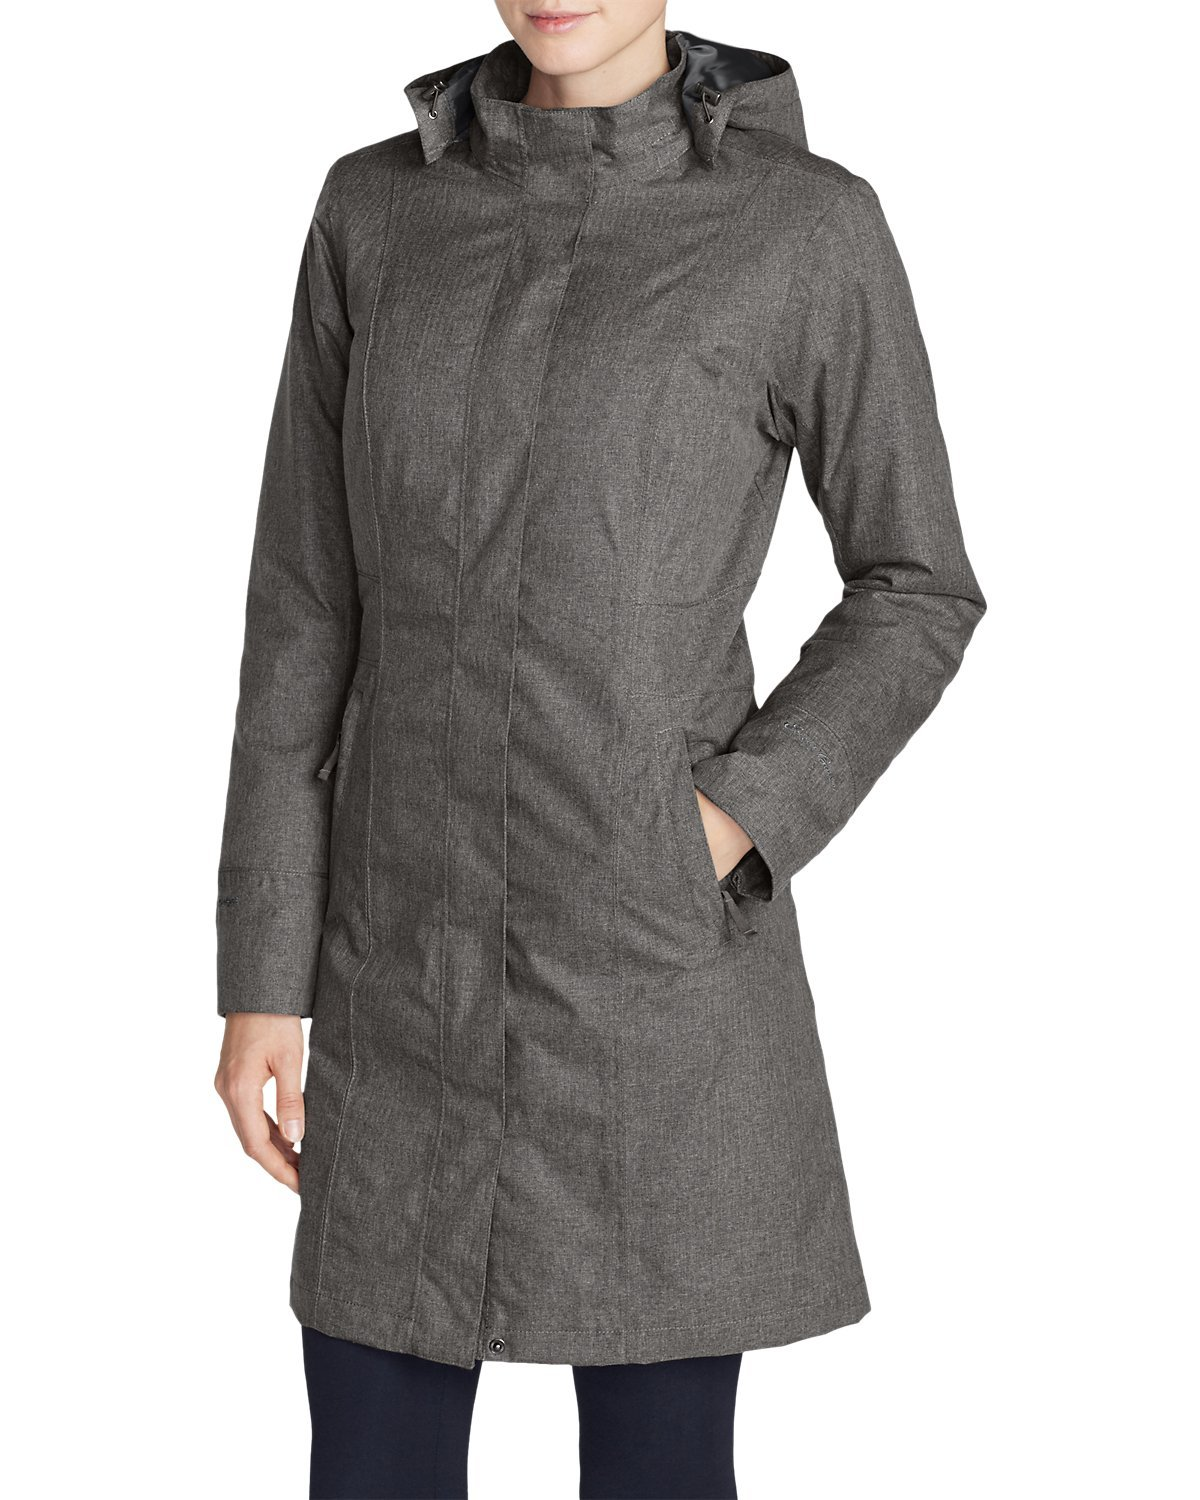 Eddie Bauer Women's Girl On The Go Insulated Trench Coat, Black M Regular by Eddie Bauer (Image #5)